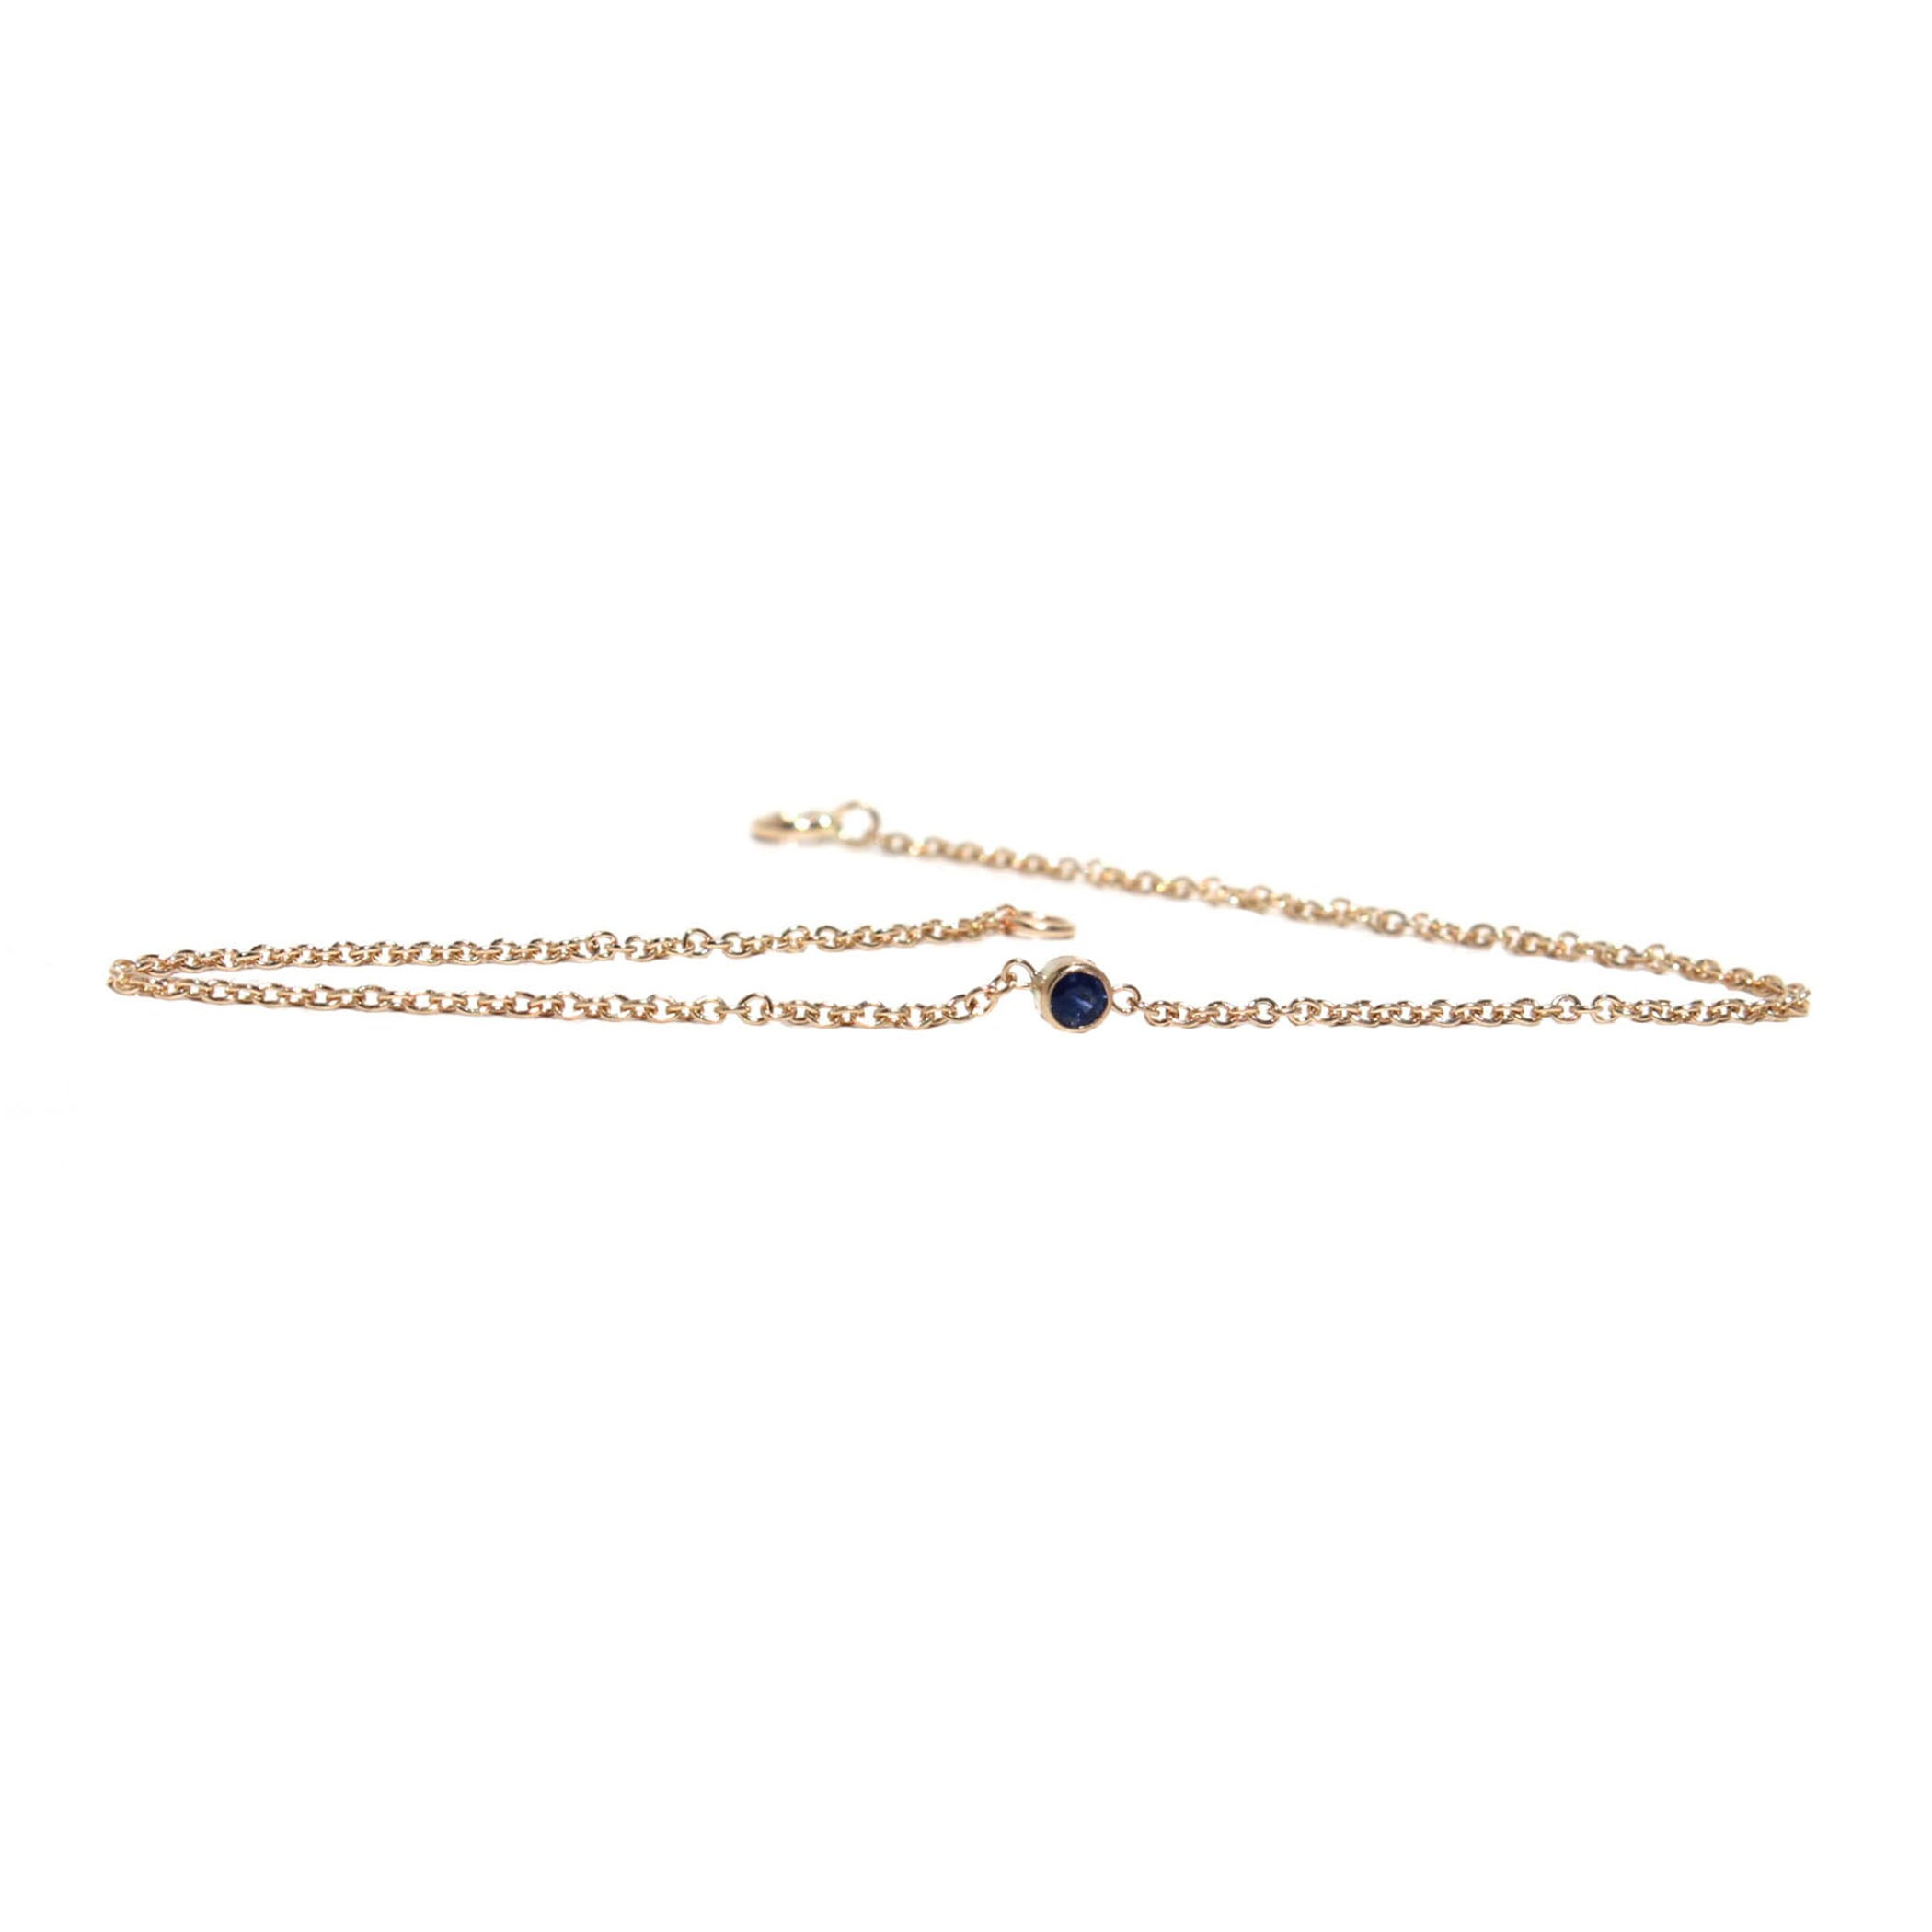 timeless hires black and london amp sapphire gold rose links of default vermeil bracelet